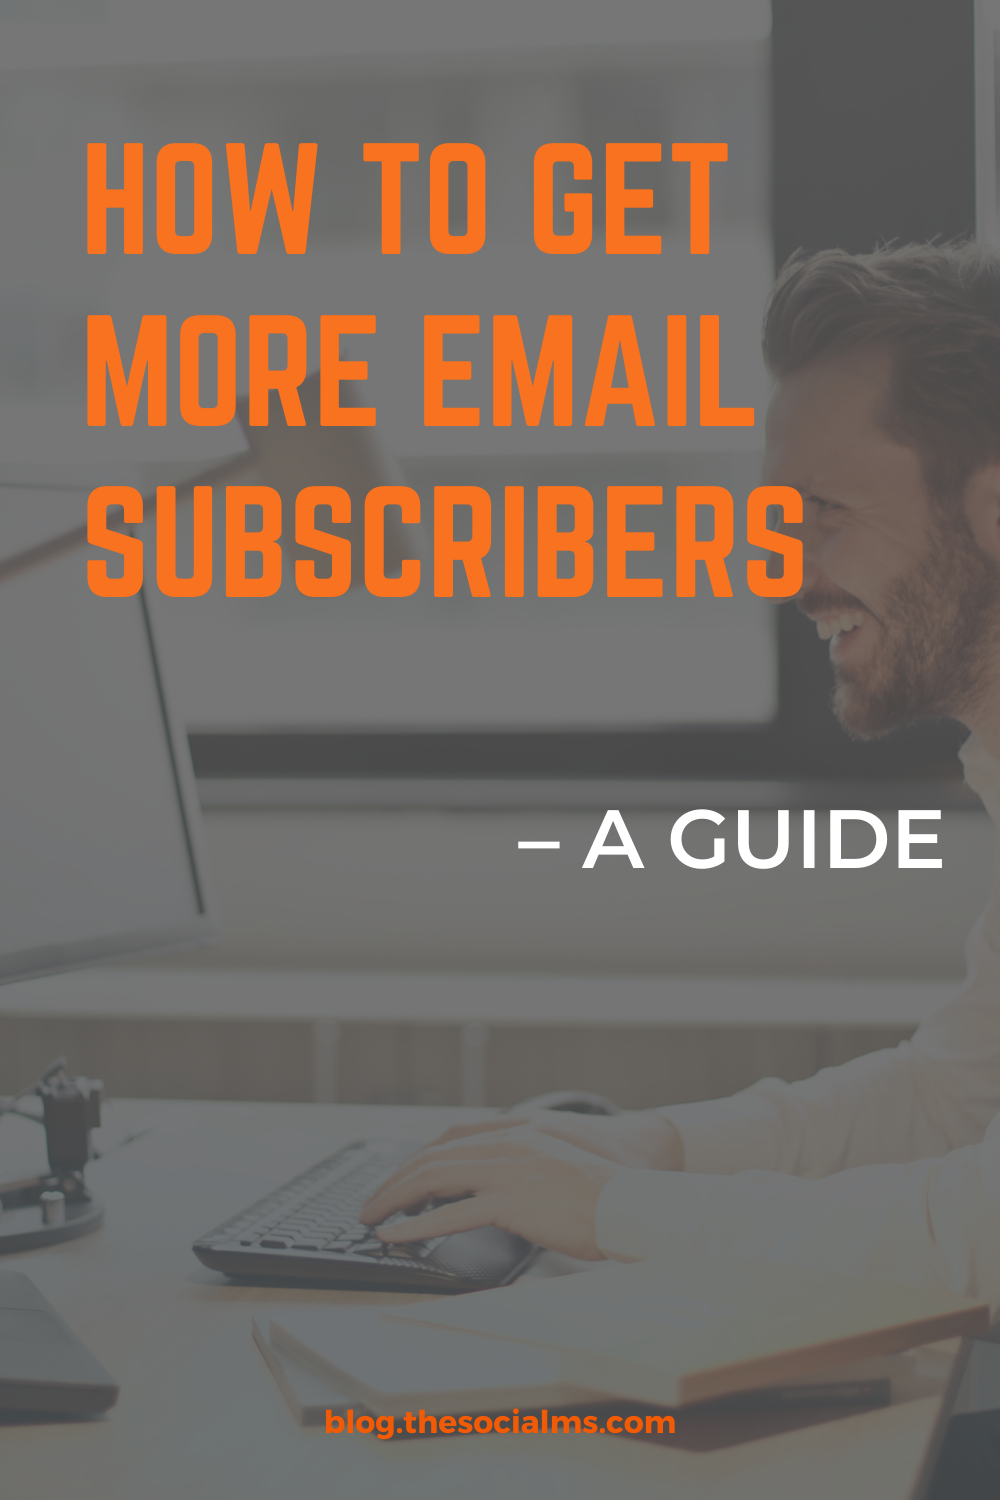 """""""Collecting new email subscribers"""" is an important part of online marketing - this post is a guide to teach you how to grow your list effectively and give you ideas to improve your conversion rate. #emailmarketing #listbuilding #emaillist #emailsubscribers #onlinebusiness #salesfunnel"""